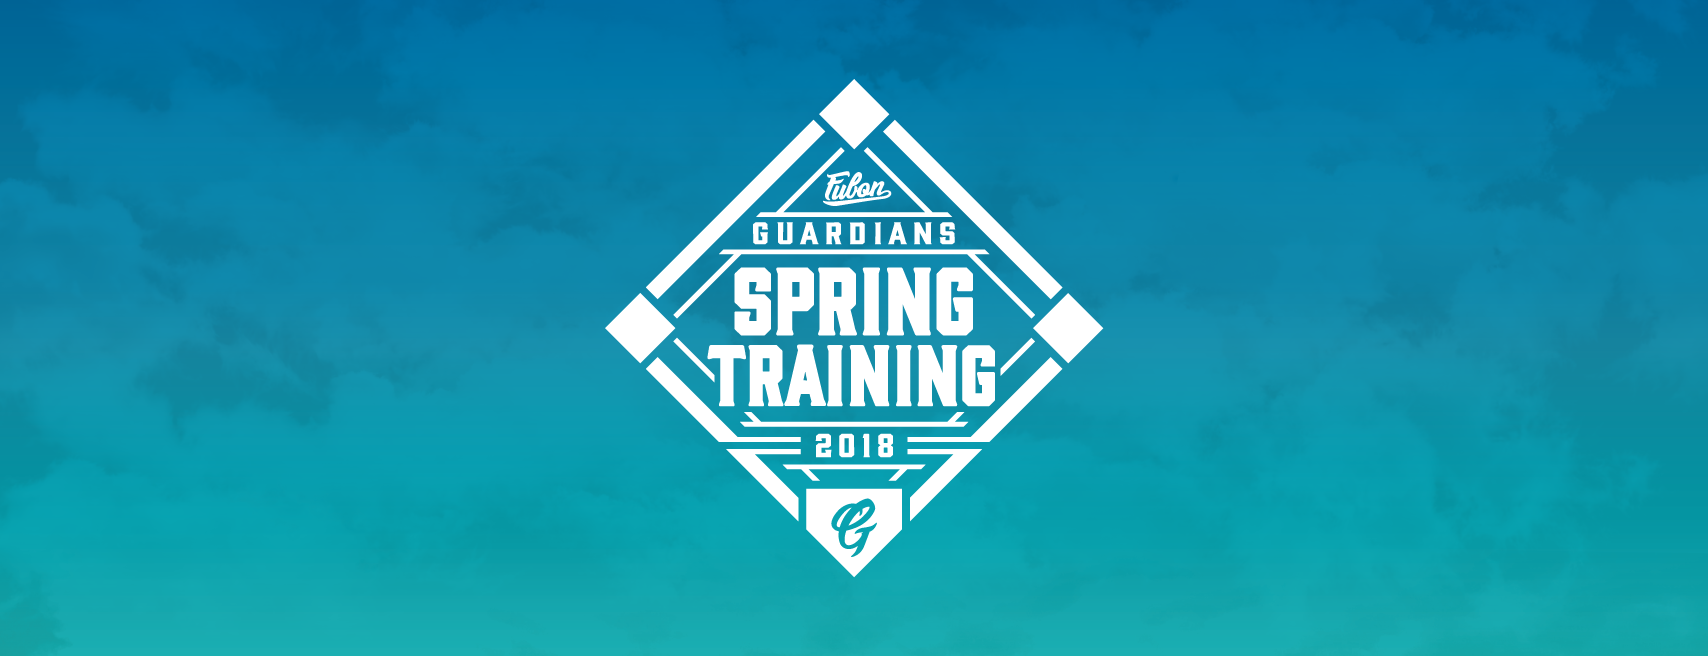 Fubon Guardians 2018 Spring Training logo